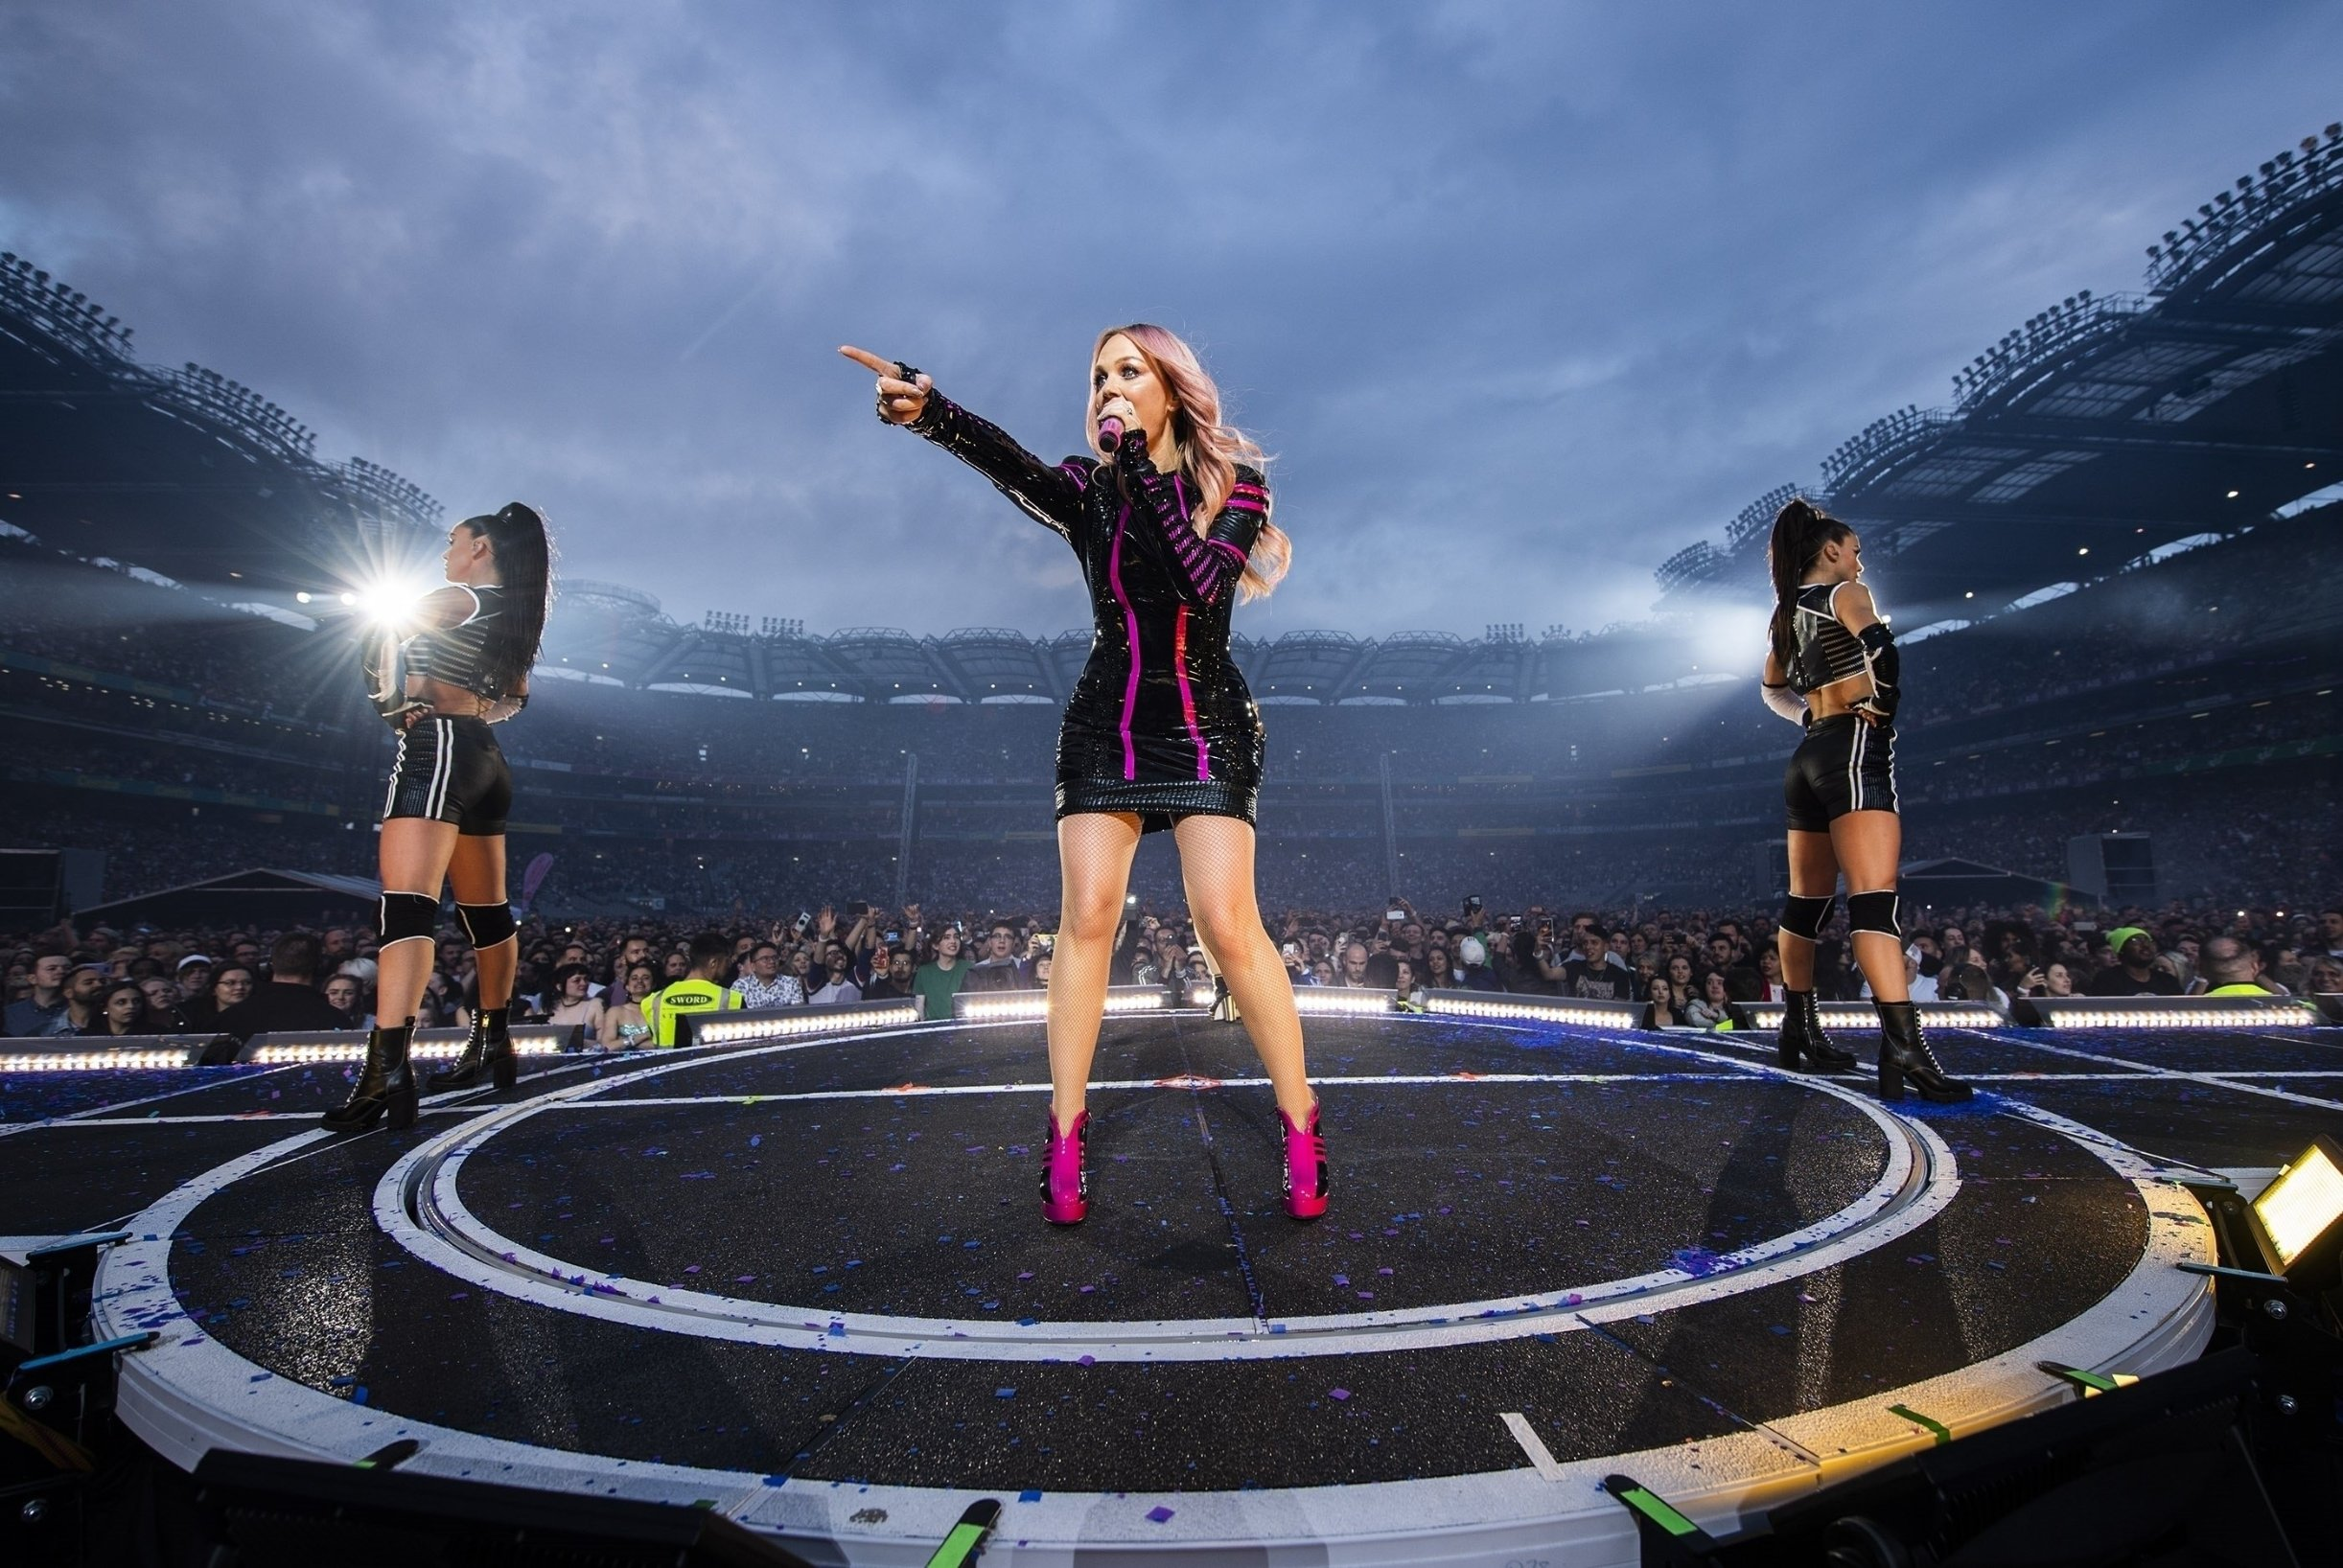 BGUK_1602307 - Dublin, UNITED KINGDOM  - The Spice Girls performing live in Dublin at the opening night of their Spice World Tour!  Pictured: Emma Bunton  BACKGRID UK 25 MAY 2019, Image: 436789850, License: Rights-managed, Restrictions: , Model Release: no, Credit line: Profimedia, Backgrid UK